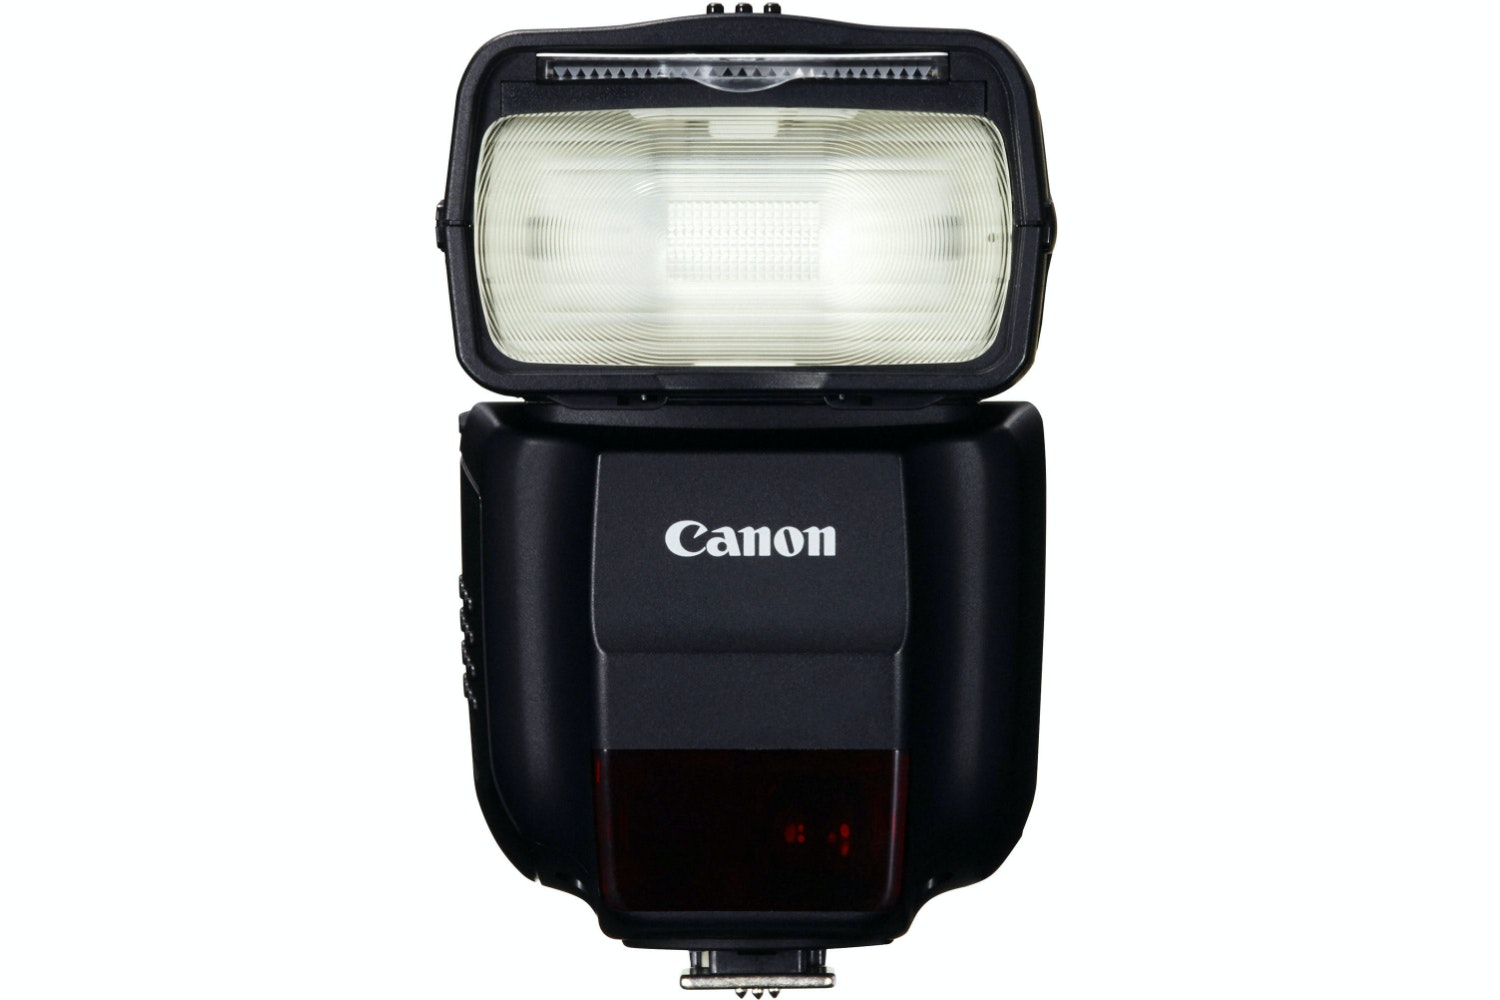 Canon Speedlite 430 EX III RT Flash Gun